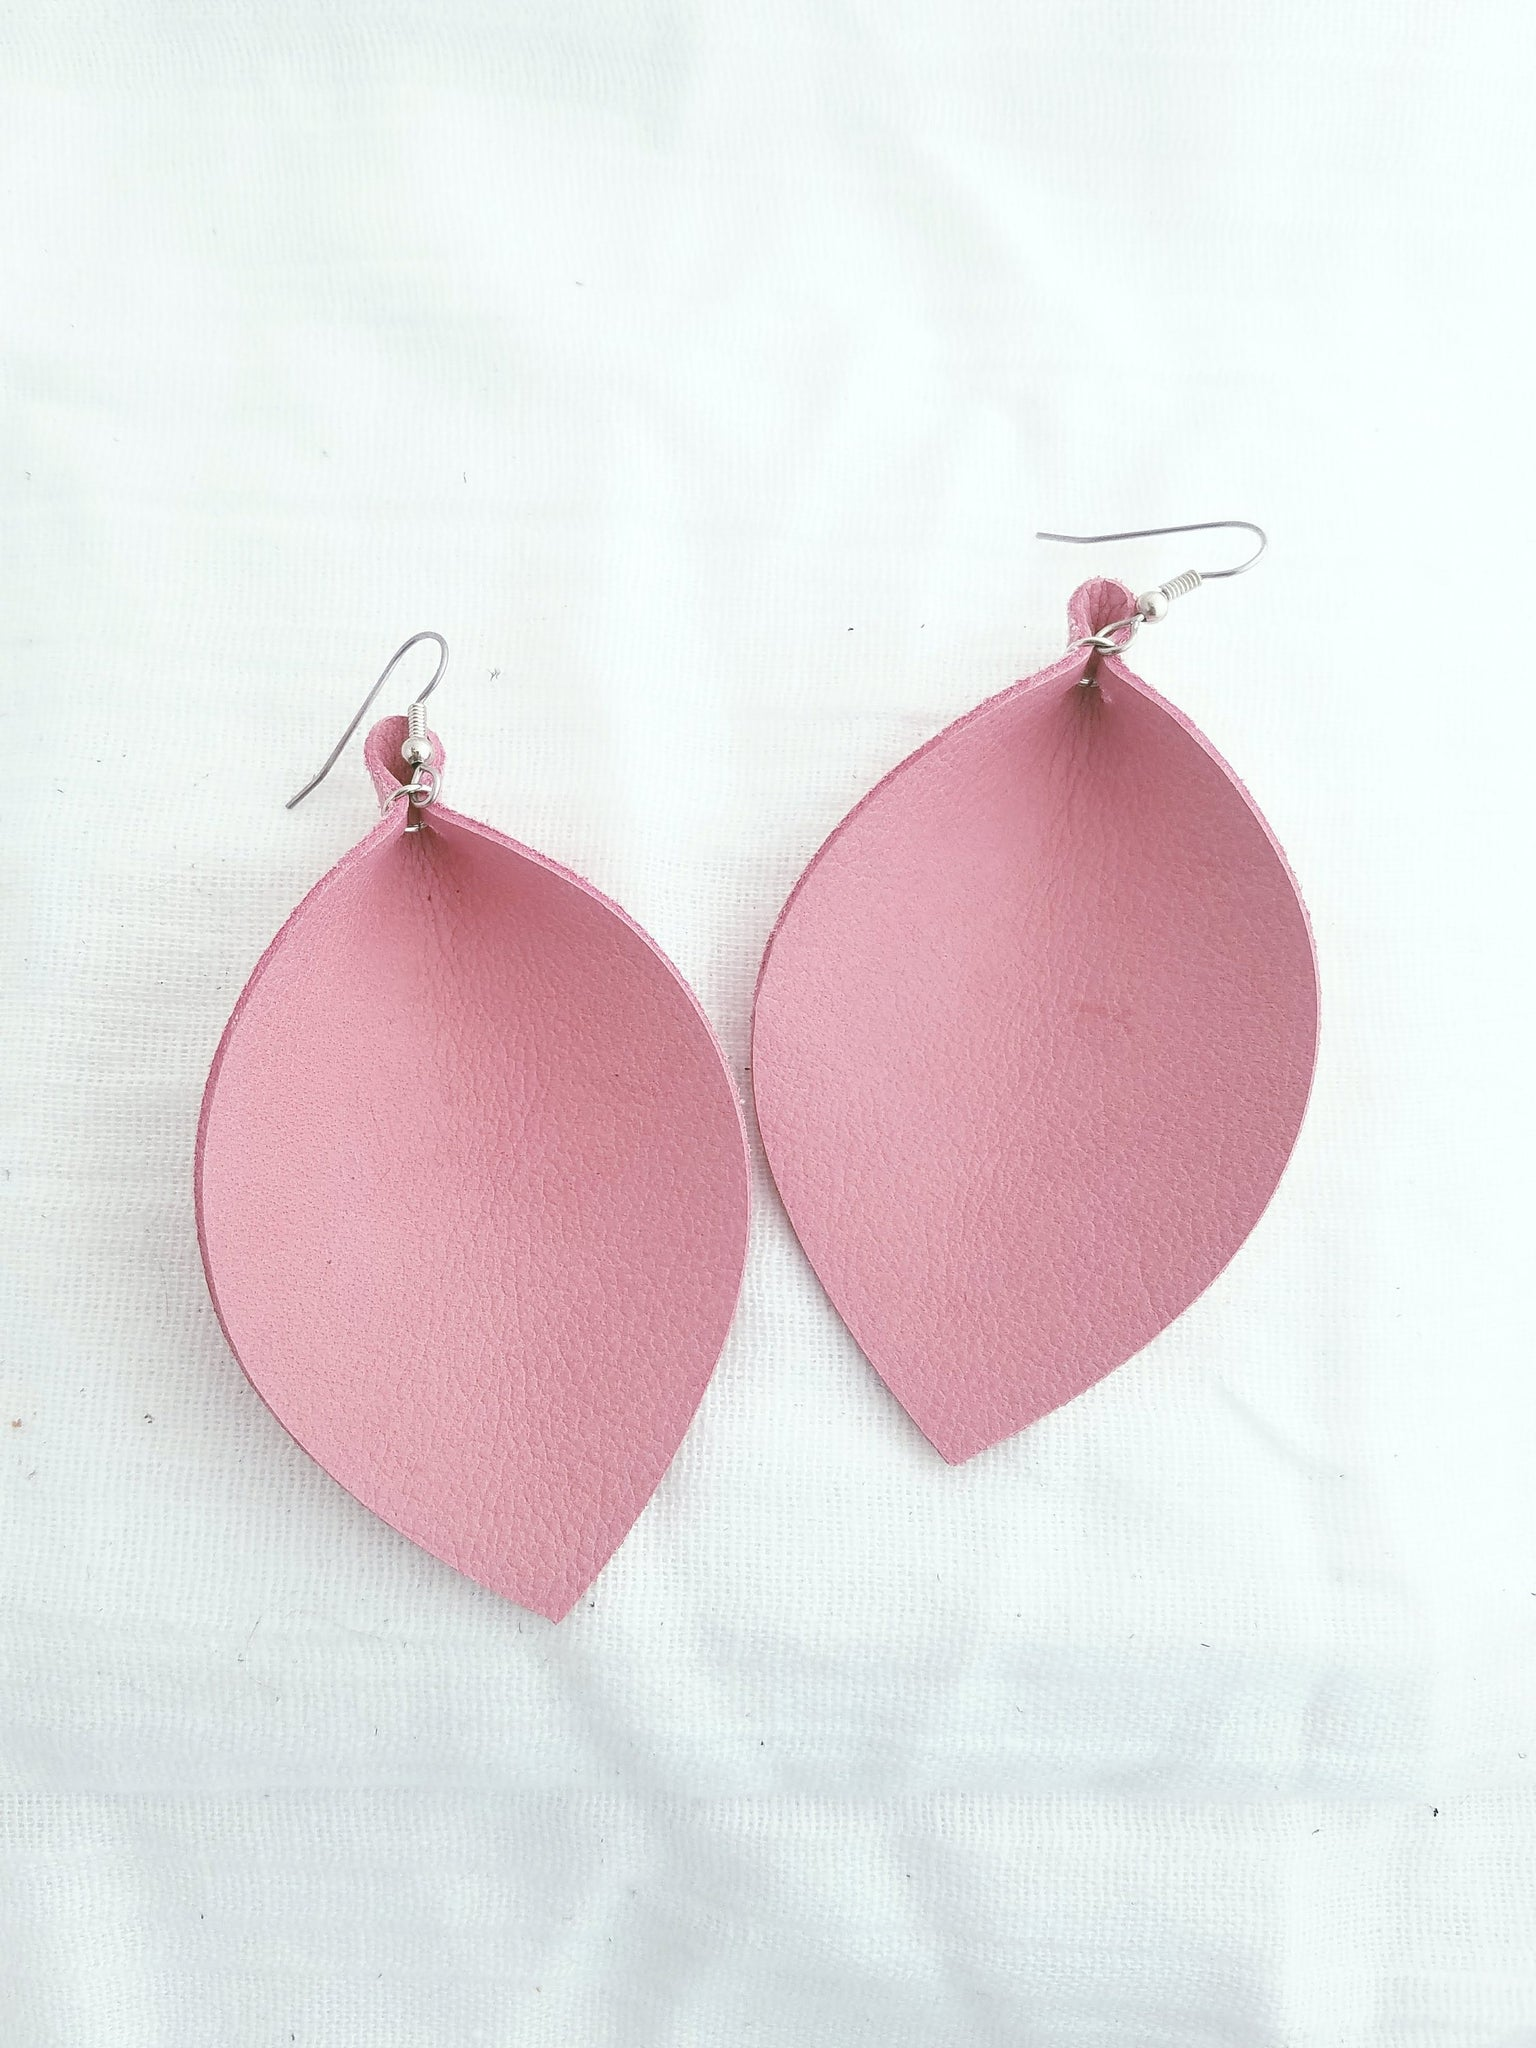 "Pink Flamingo / Leather Leaf Earrings / XL / 3.25 x 2.25"" / Hypoallergenic / FREE SHIPPING"